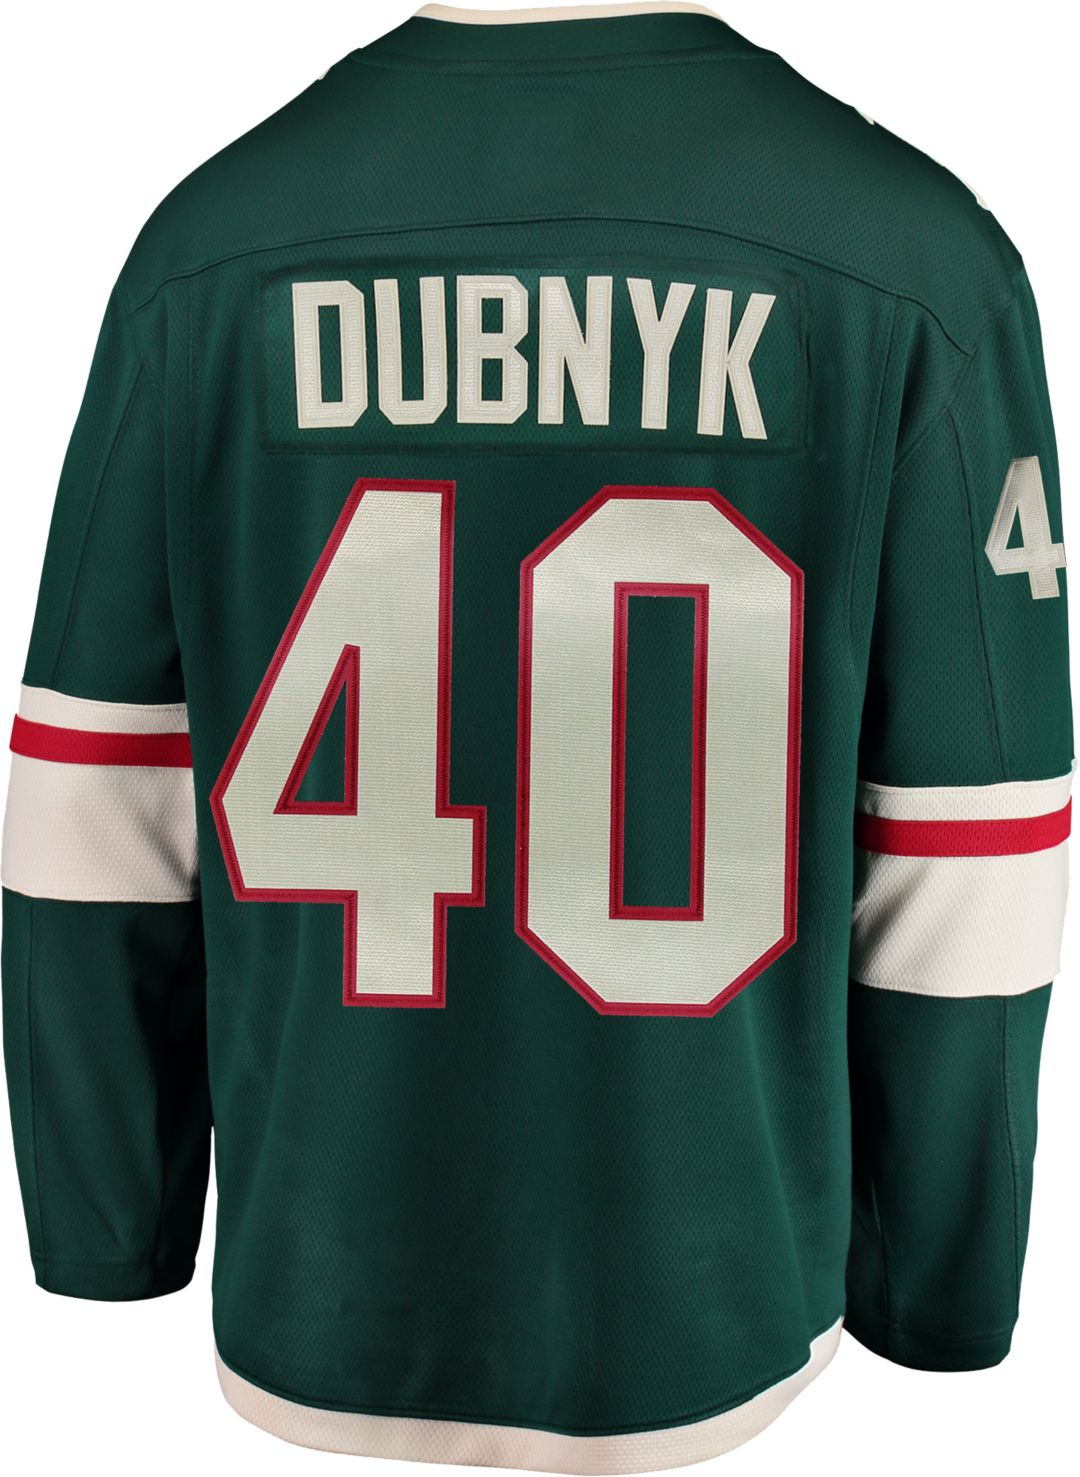 innovative design b73df b9216 NHL Men's Minnesota Wild Devan Dubnyk #40 Breakaway Home Replica Jersey